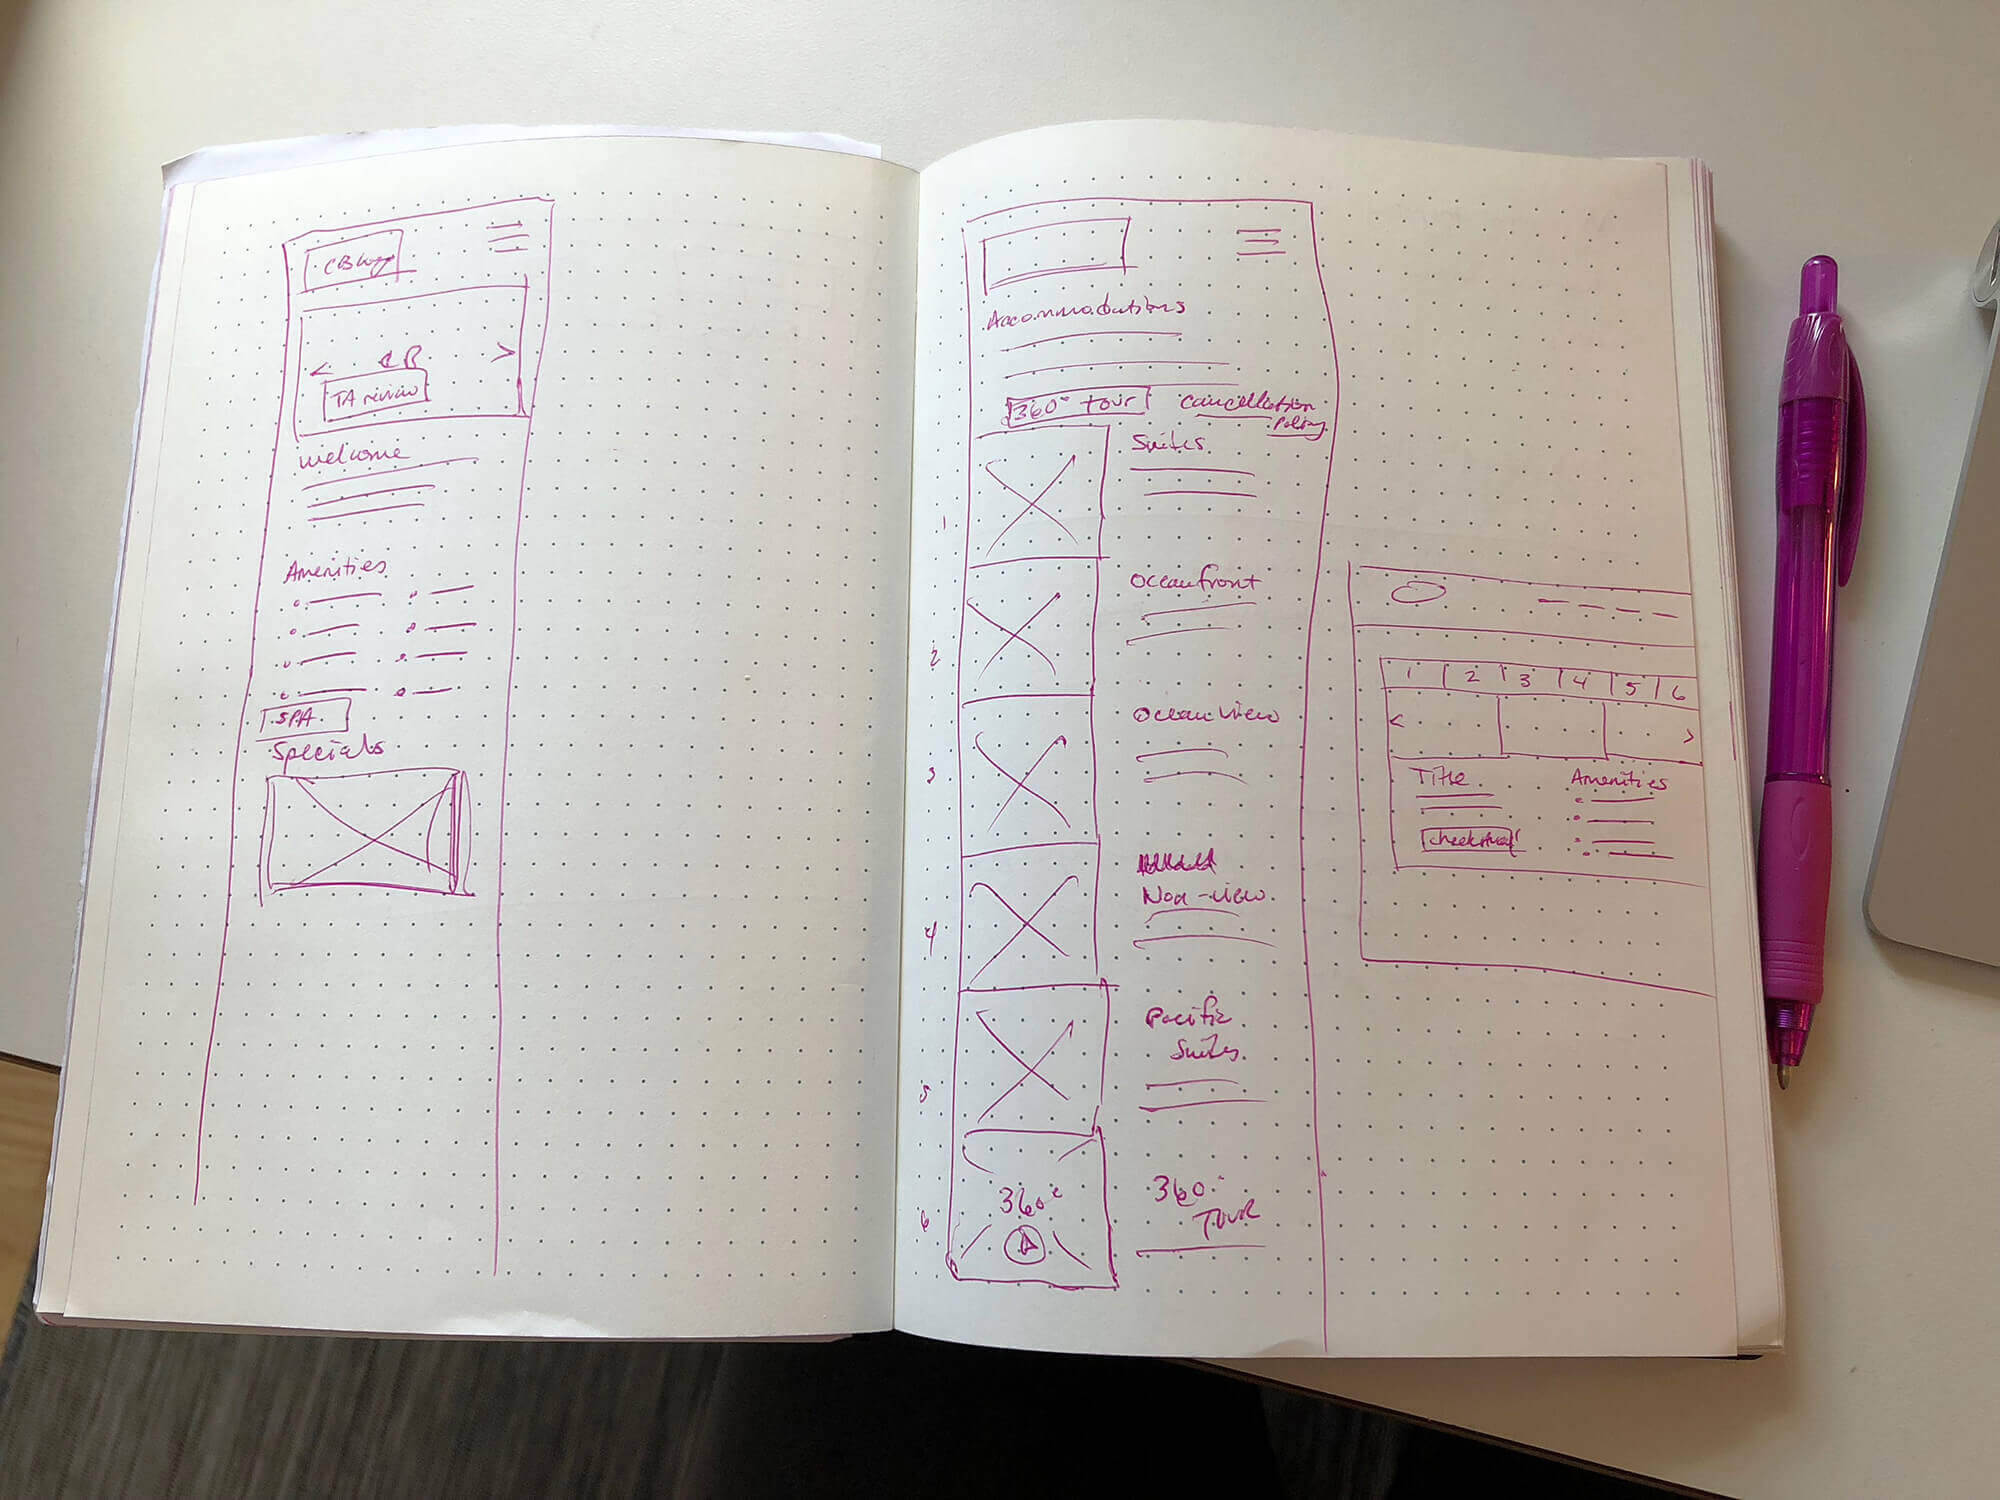 My sketch notebook which shows some very rough sketches of mobile views.